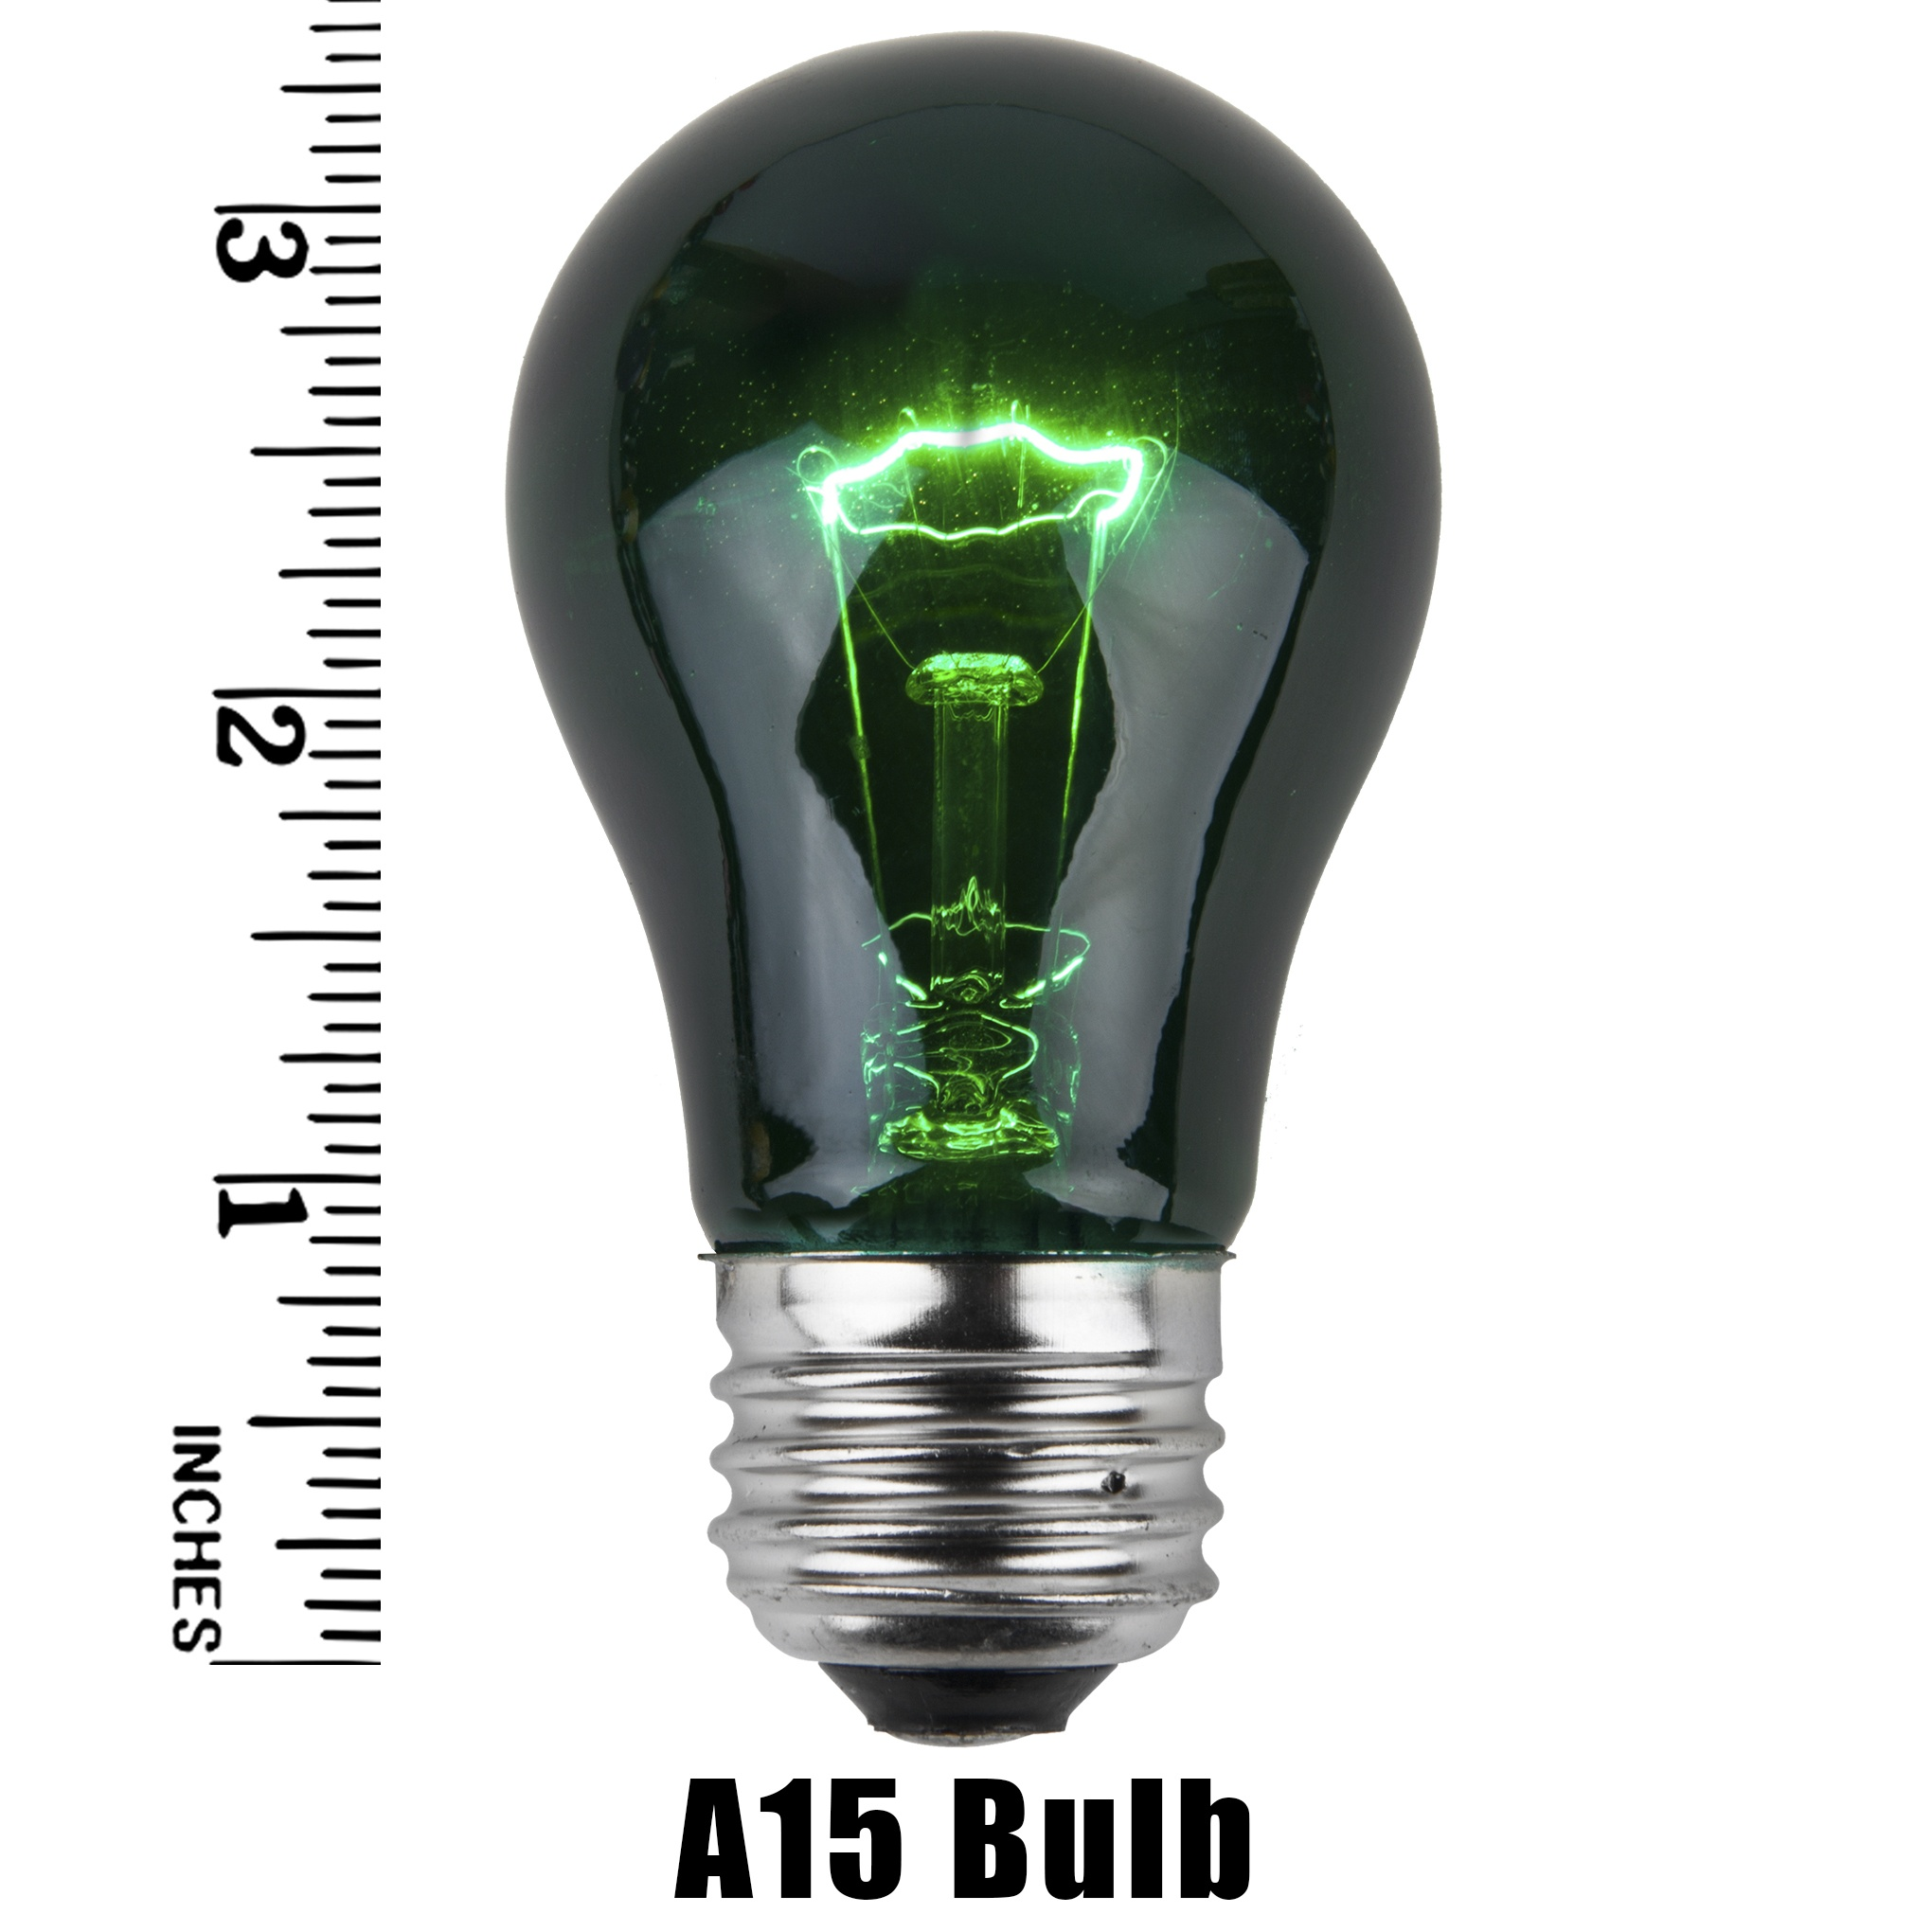 A15 Green Transparent Incandescent Incandescent Bulb Meaurement